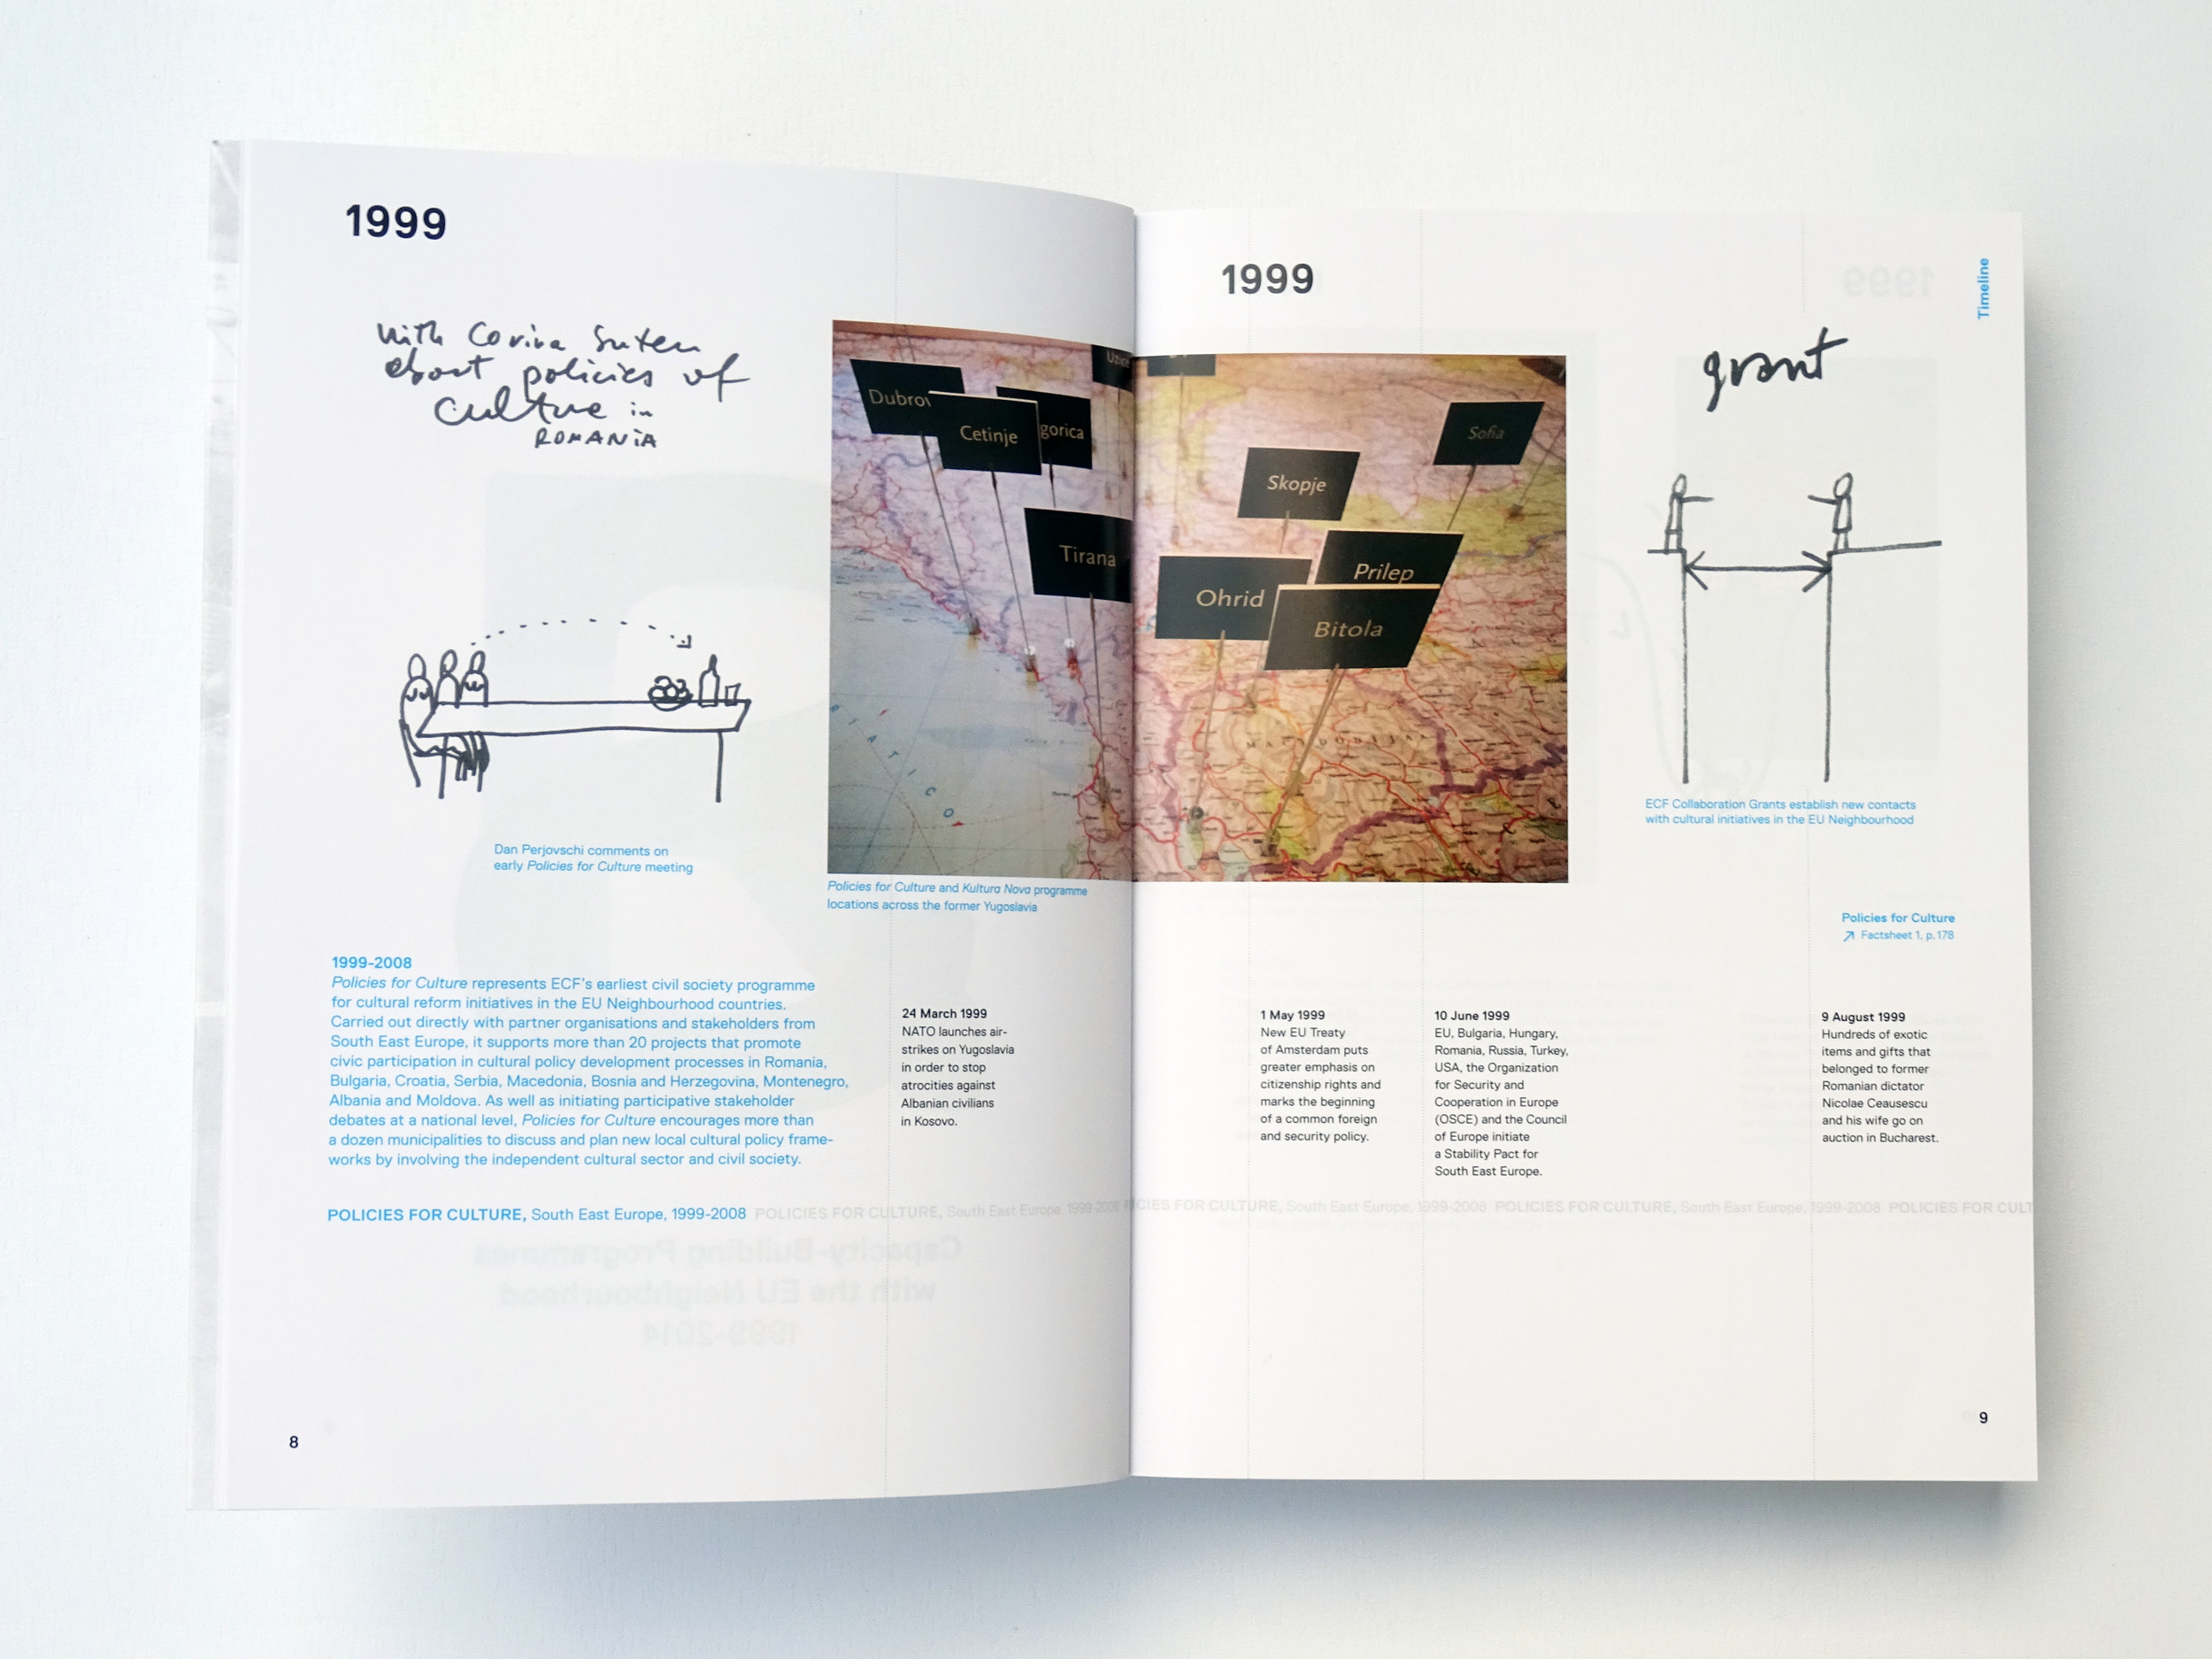 Design and photo by Gerlinde Schuller (The World as Flatland)